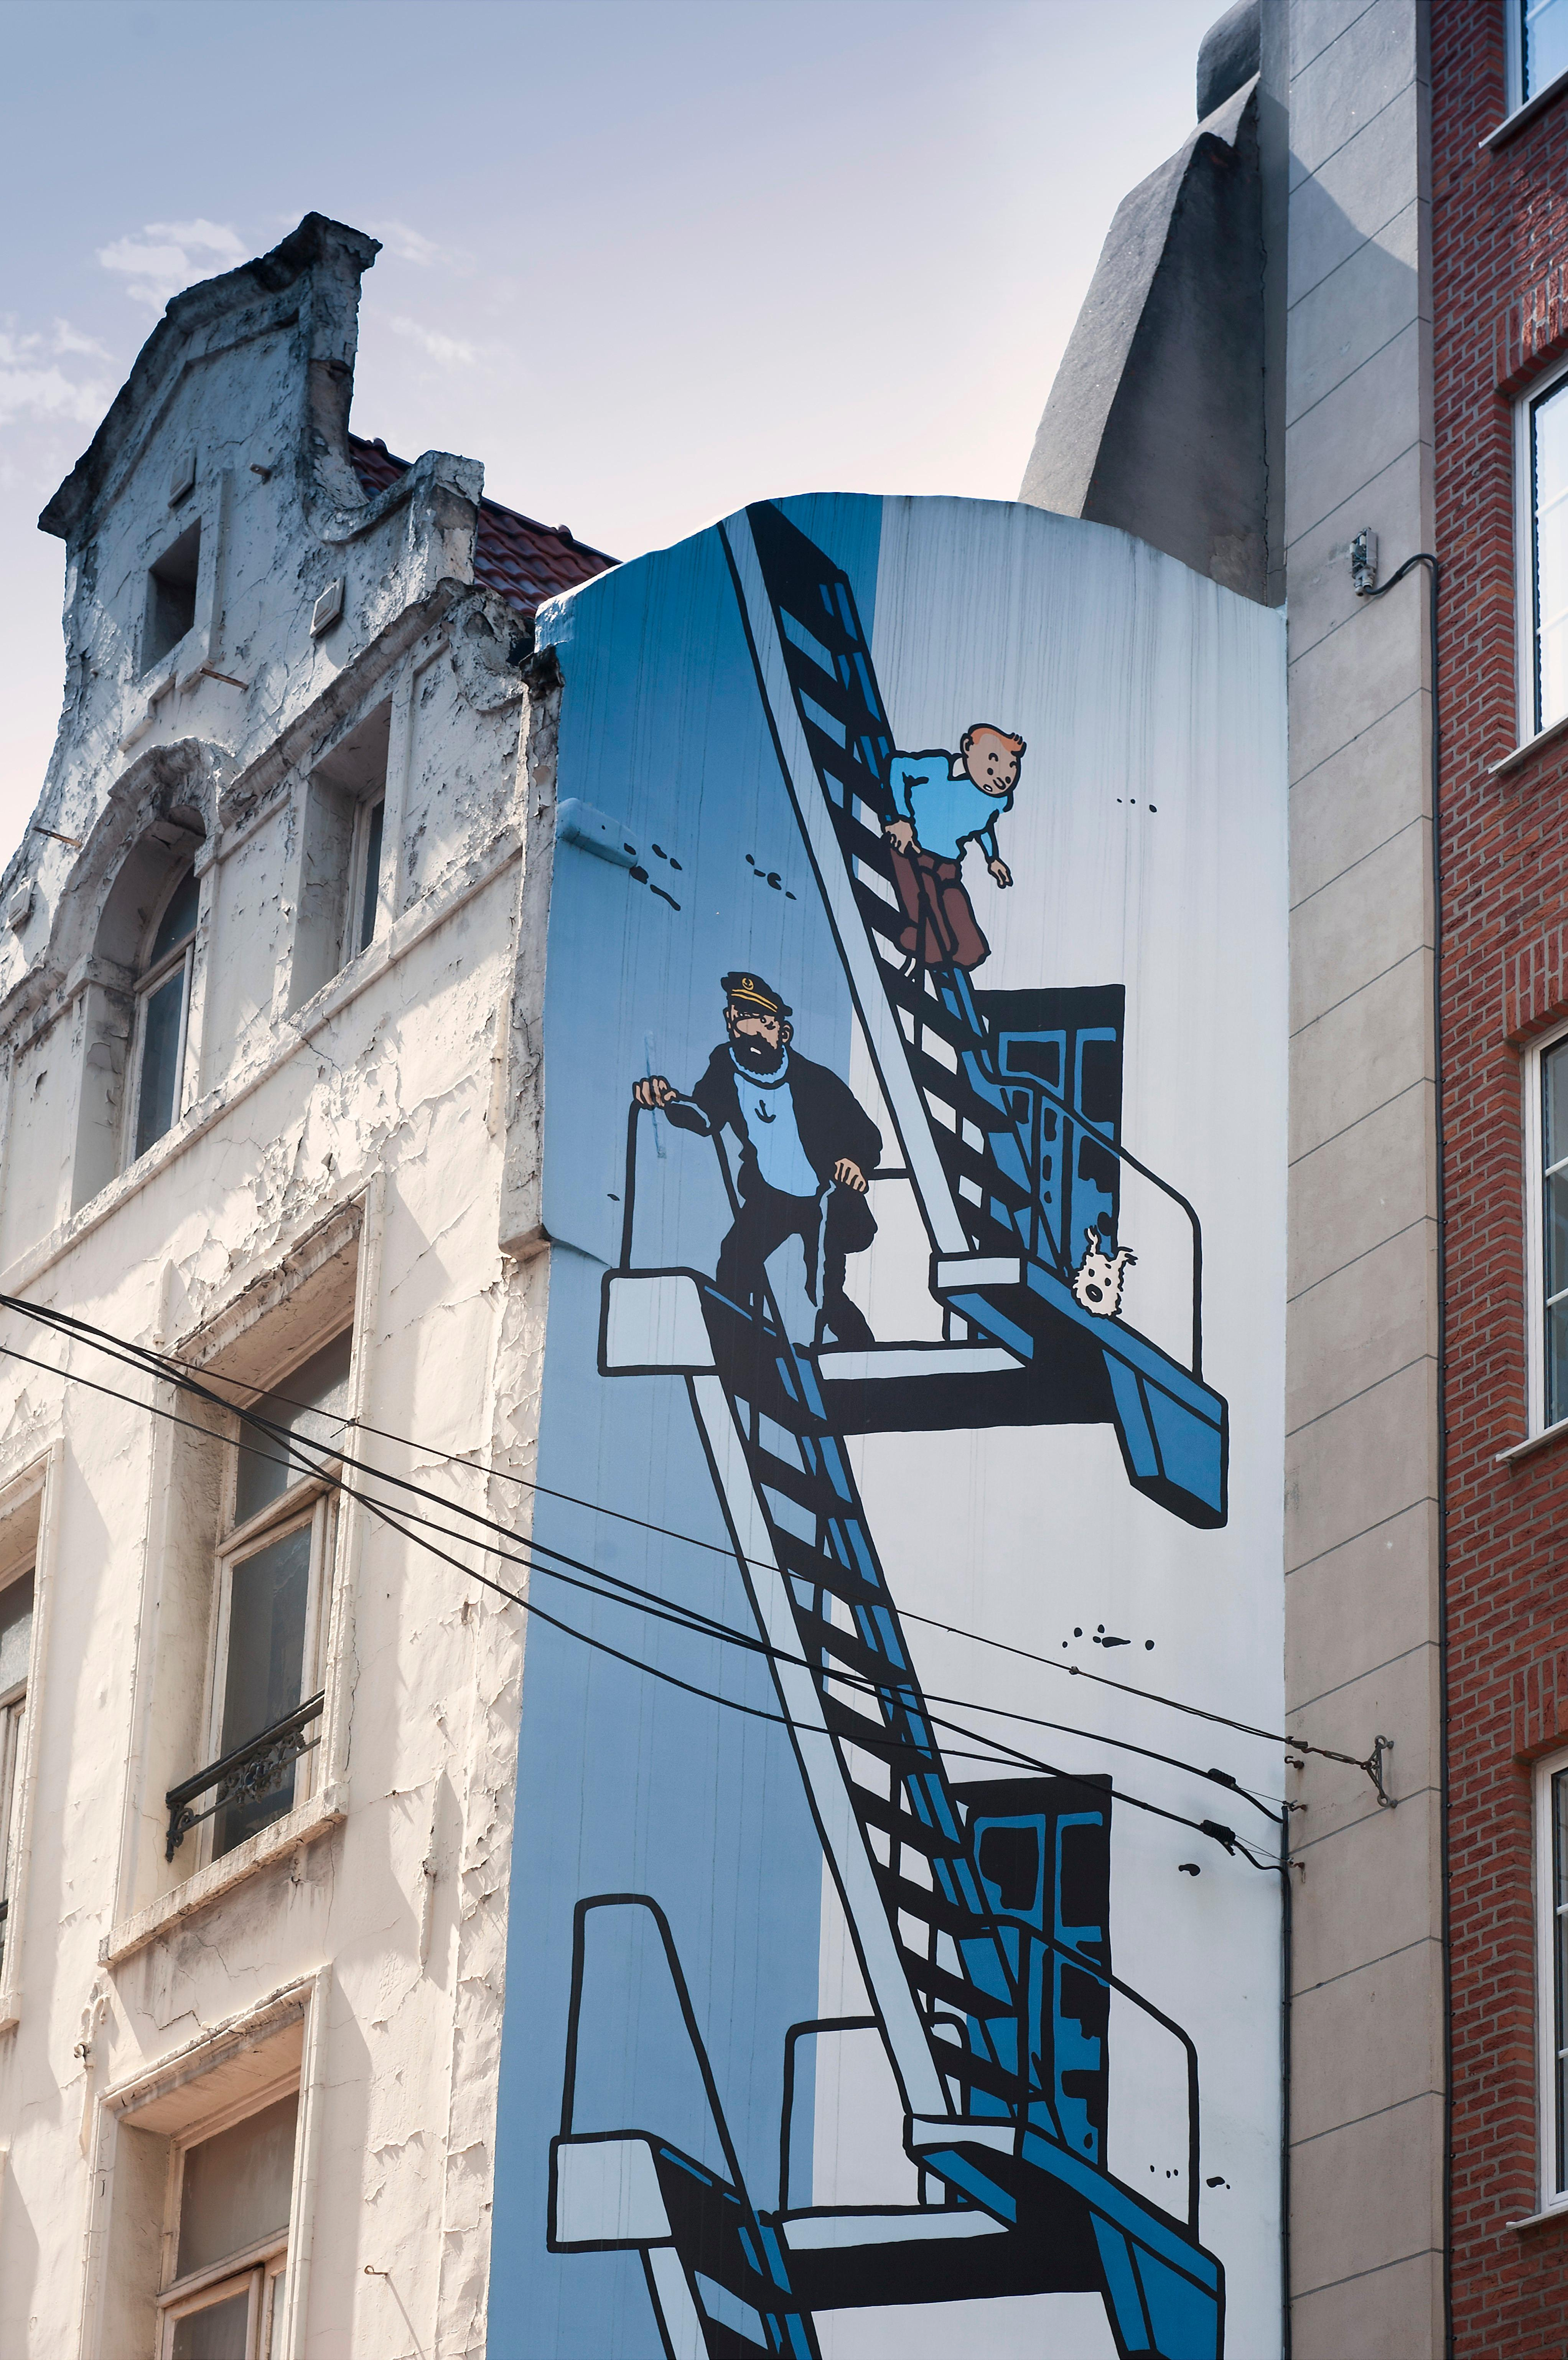 Mural of Hergé's Tintin and Captain Haddock, Brussels